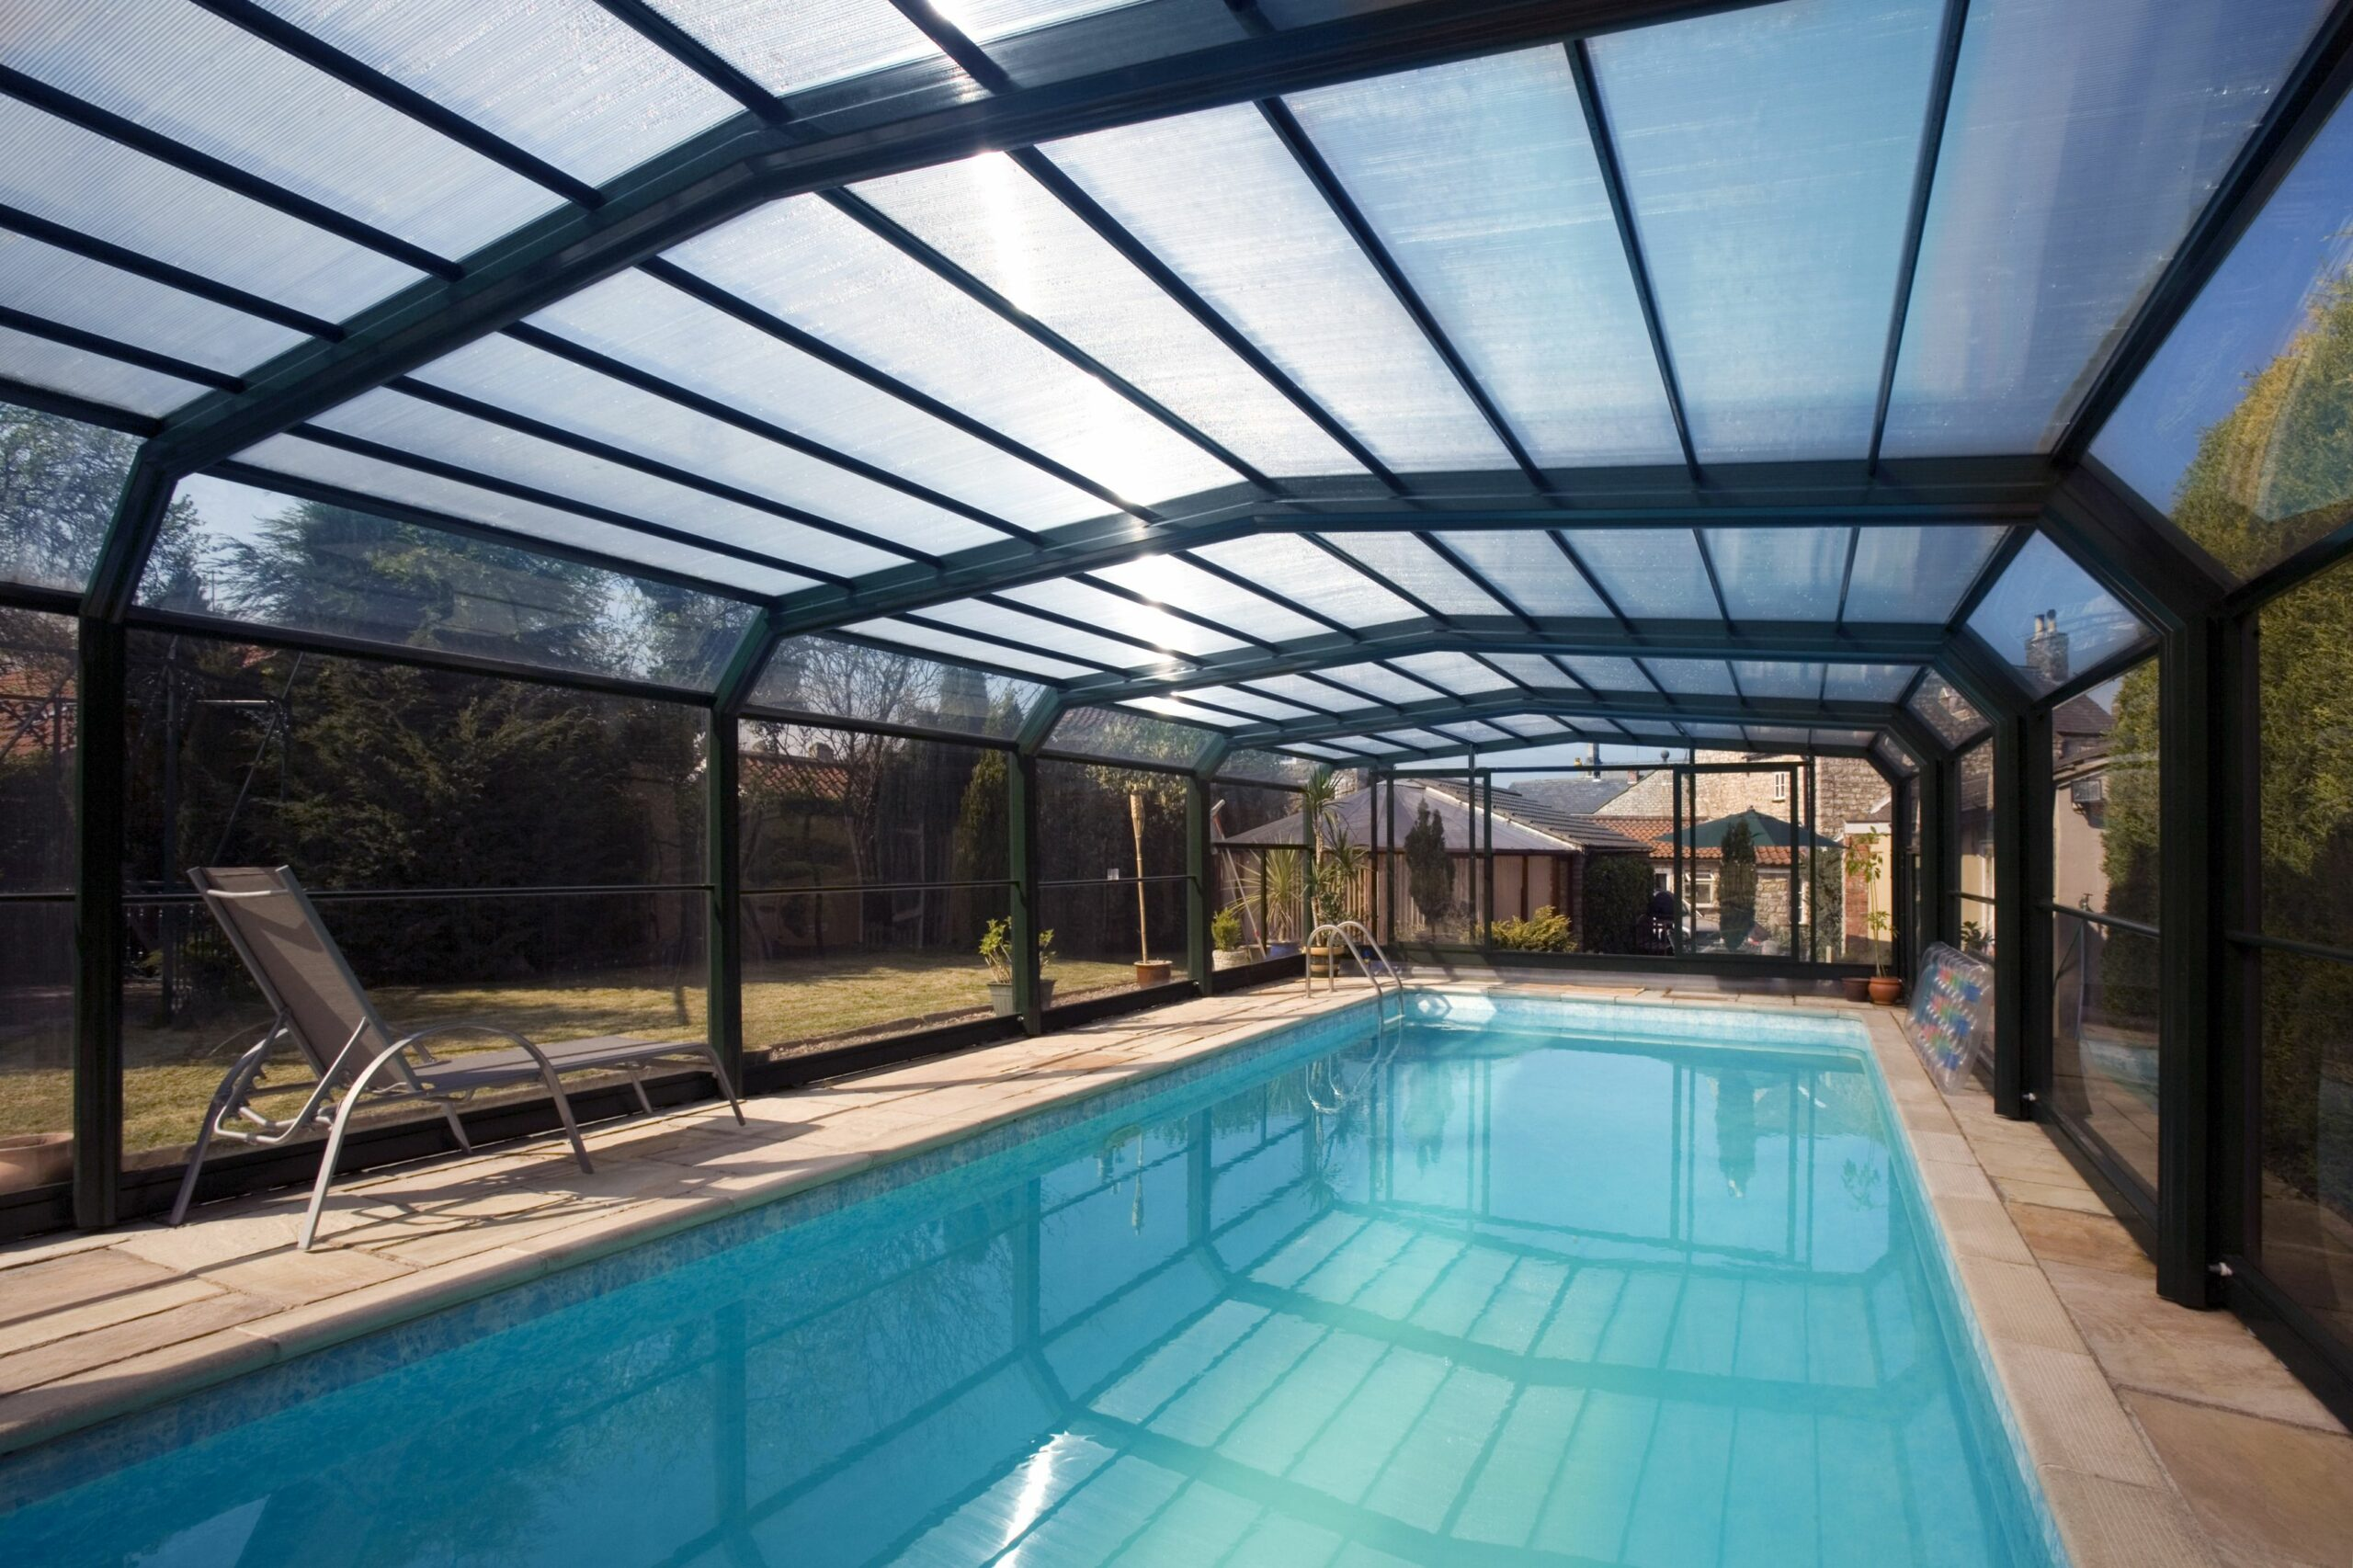 10 Great design Ideas to Customize a Pool Enclosure in Your ..